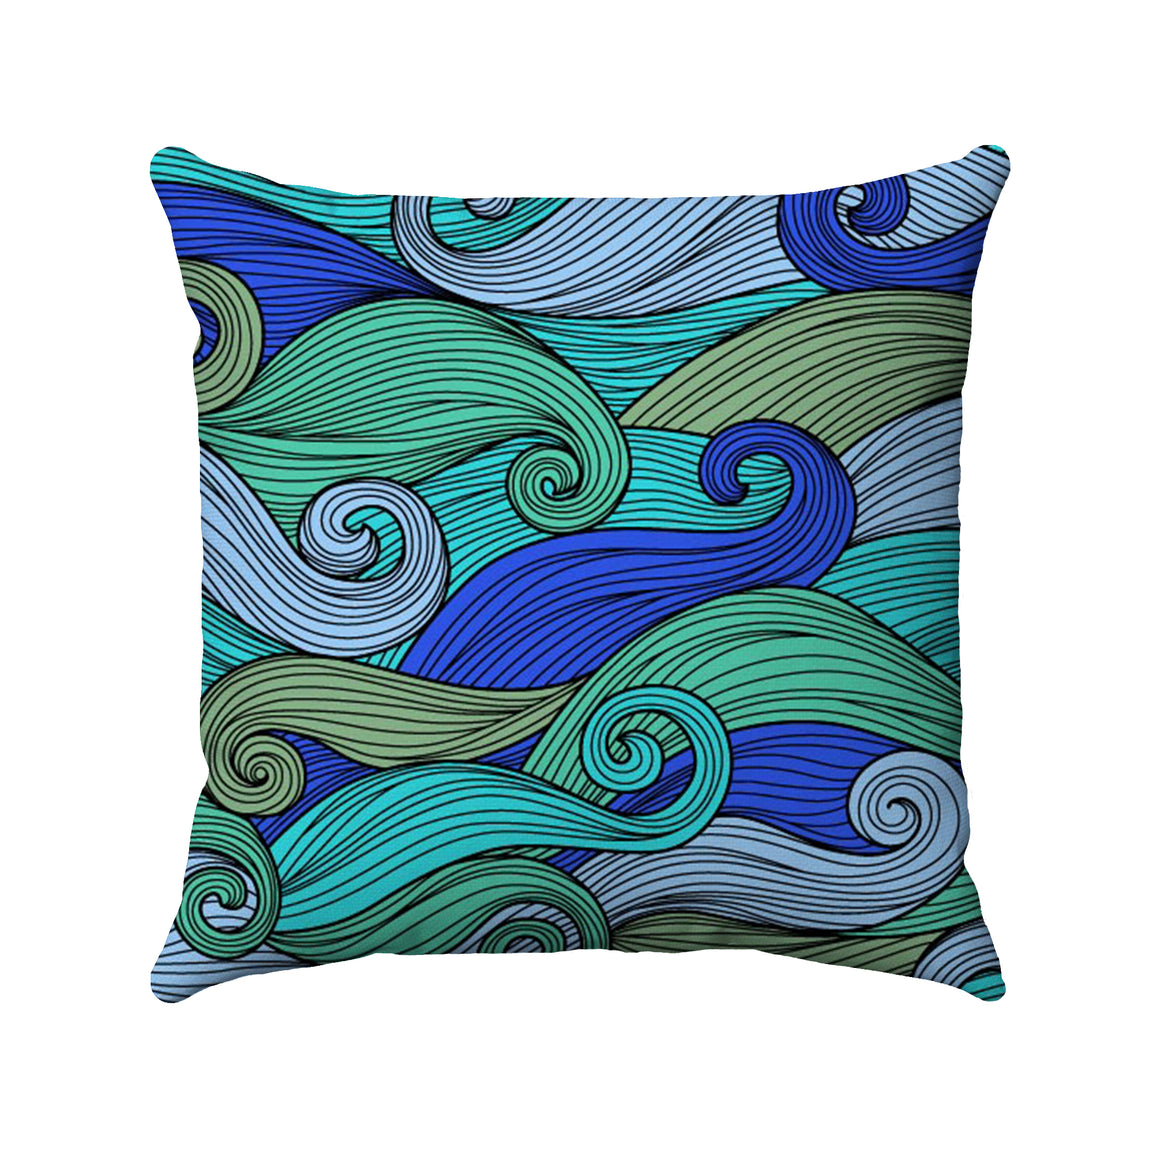 Cobalt blue and sea green palette colors on intermingling curly waves